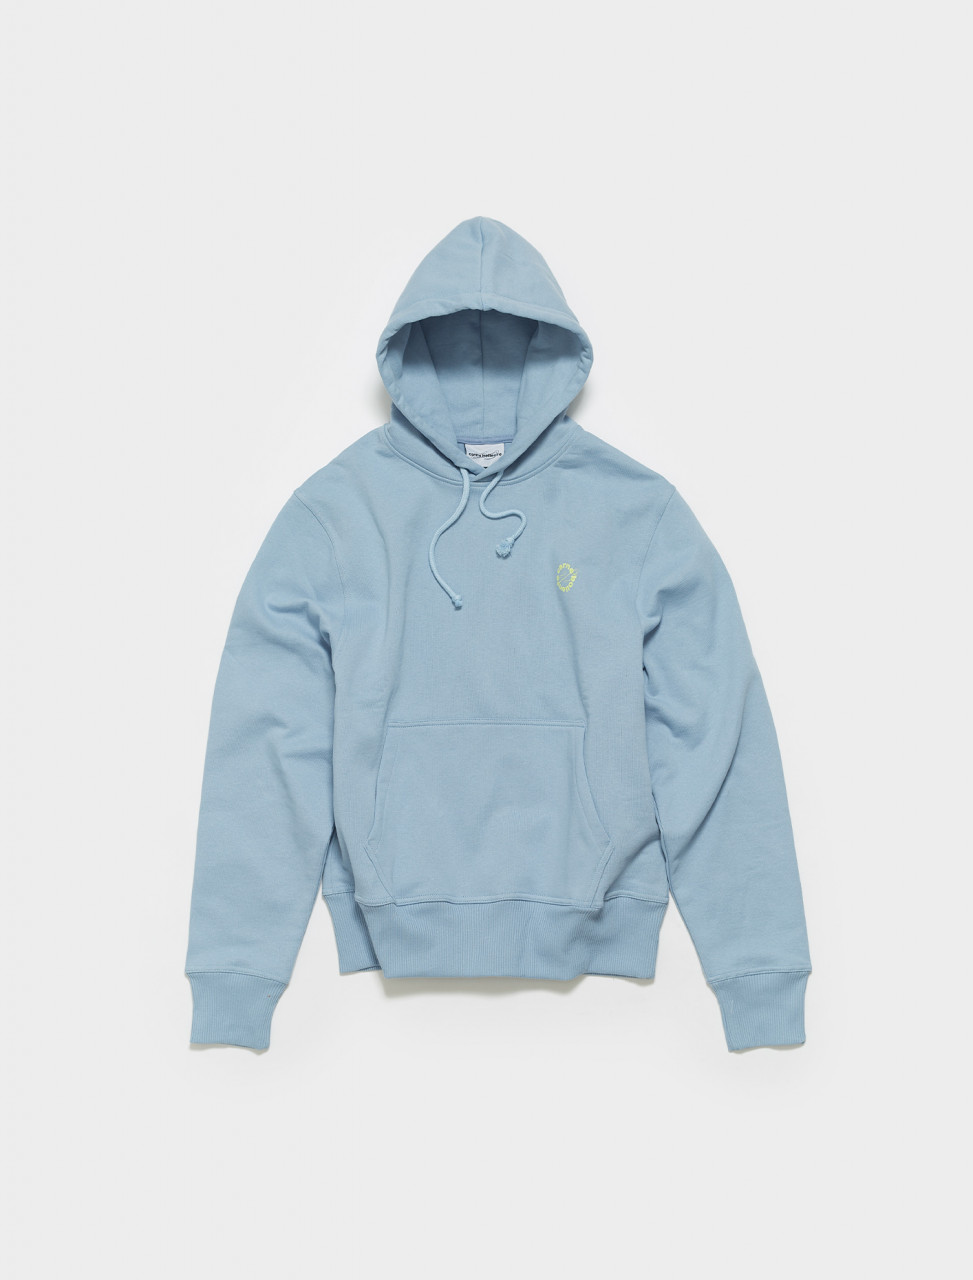 SS21SW03 CARNE BOLLENTE ANGRY FOR MORE HOODIE IN WASHED BLUE